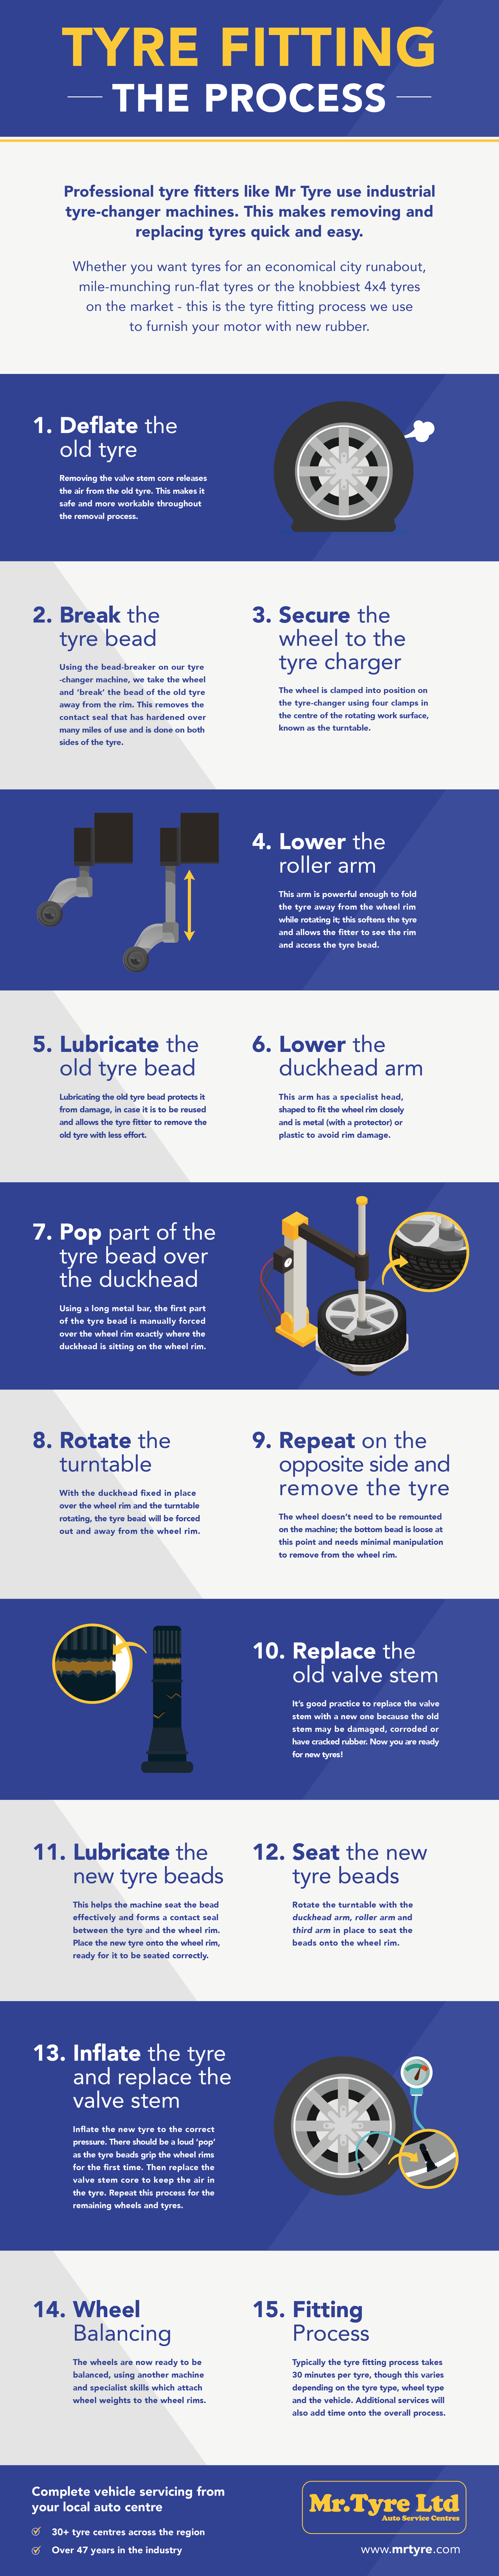 Tyre Fitting Process